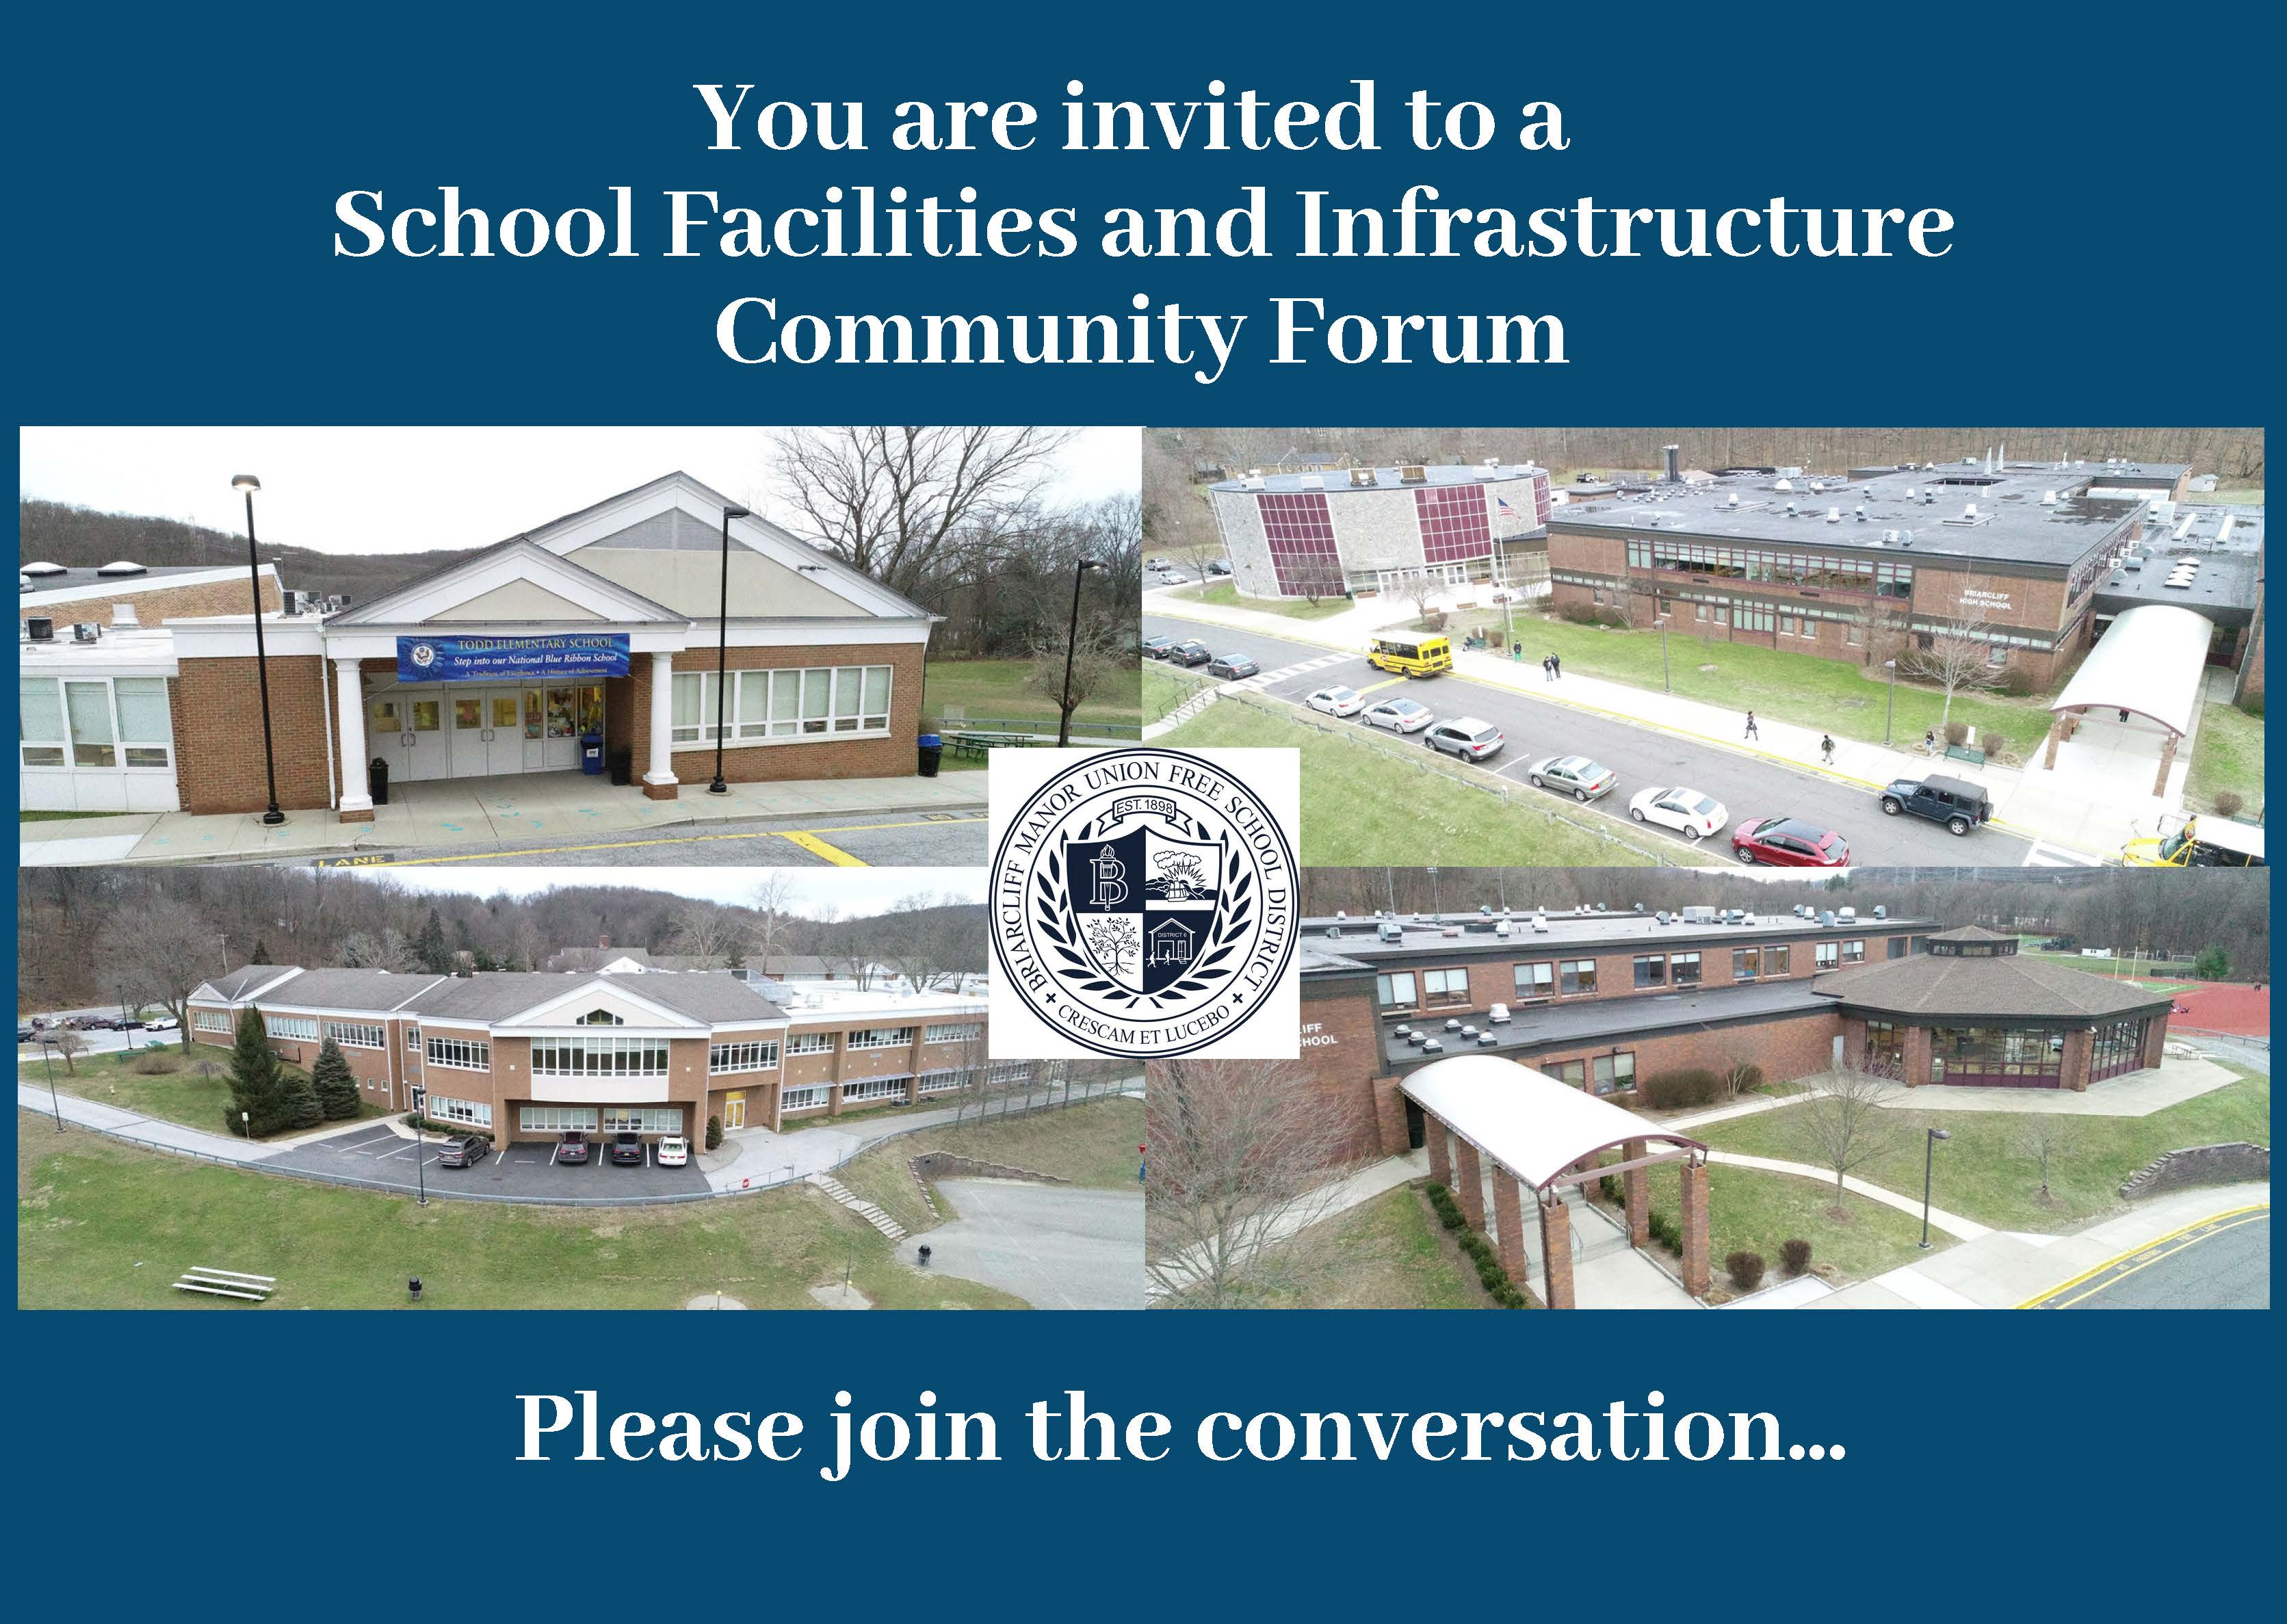 Community Forum/Roundtable Discussions Planned for February 2 and 6